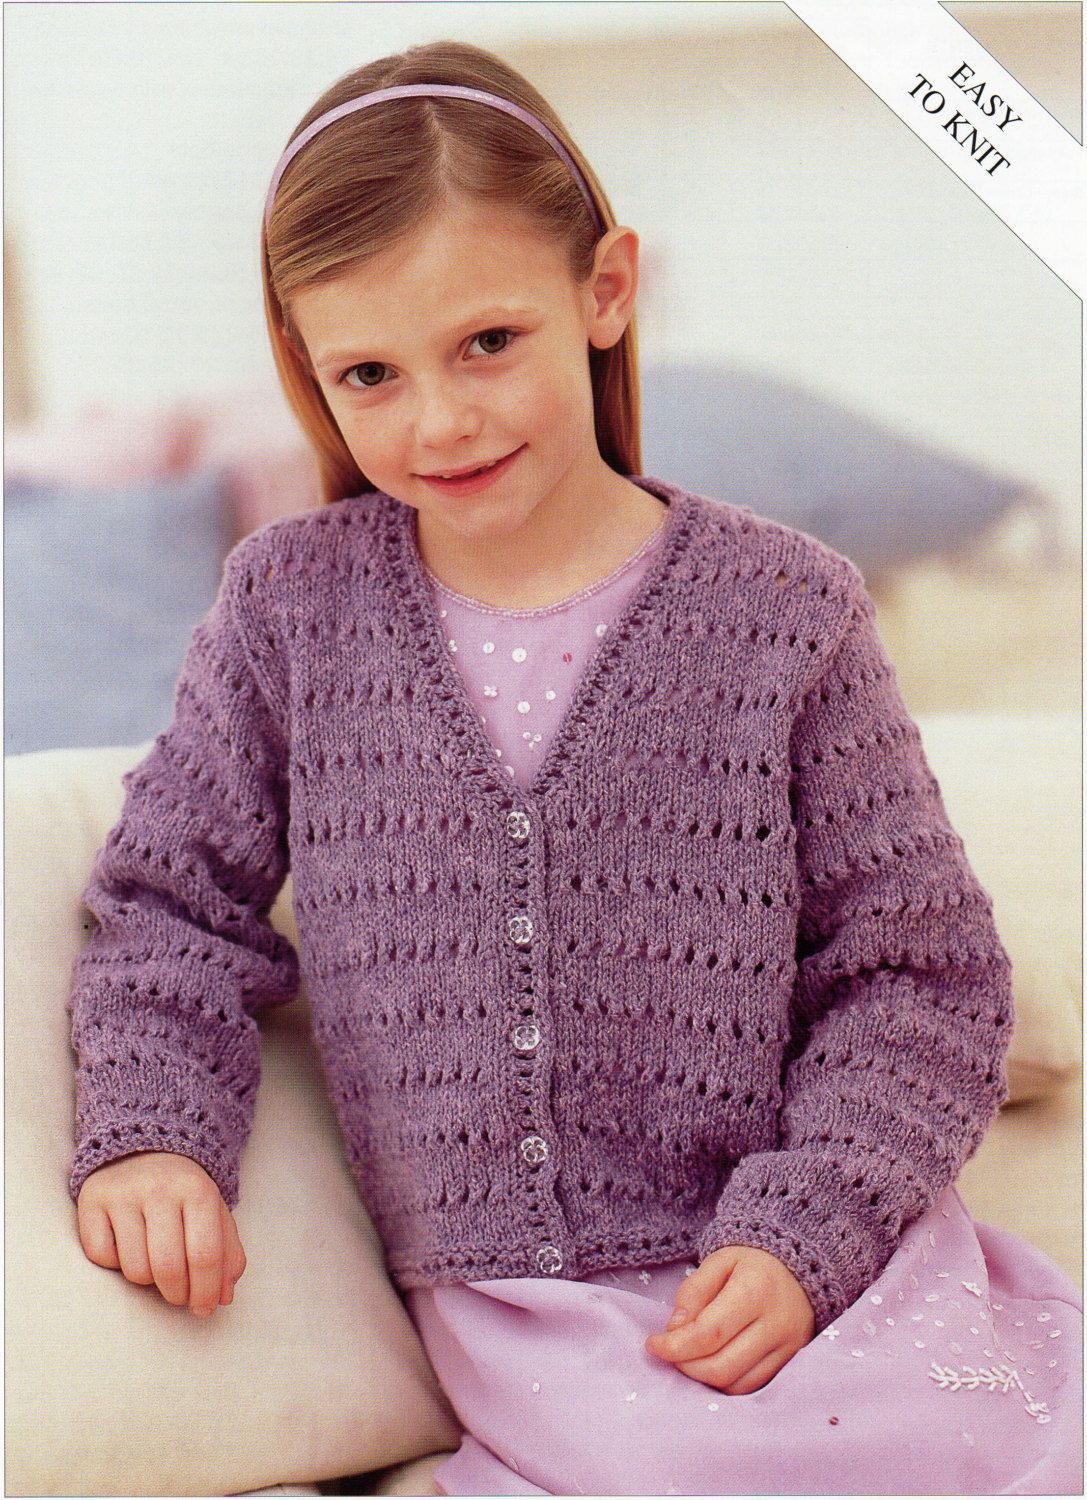 79f320838dc0 Girls Knitting pattern Girls Cardigan Childs Cardigan Easy Knit V neck  Cardigan 22-32inch DK Childrens Knitting Pattern PDF Instant Download by  Minihobo on ...